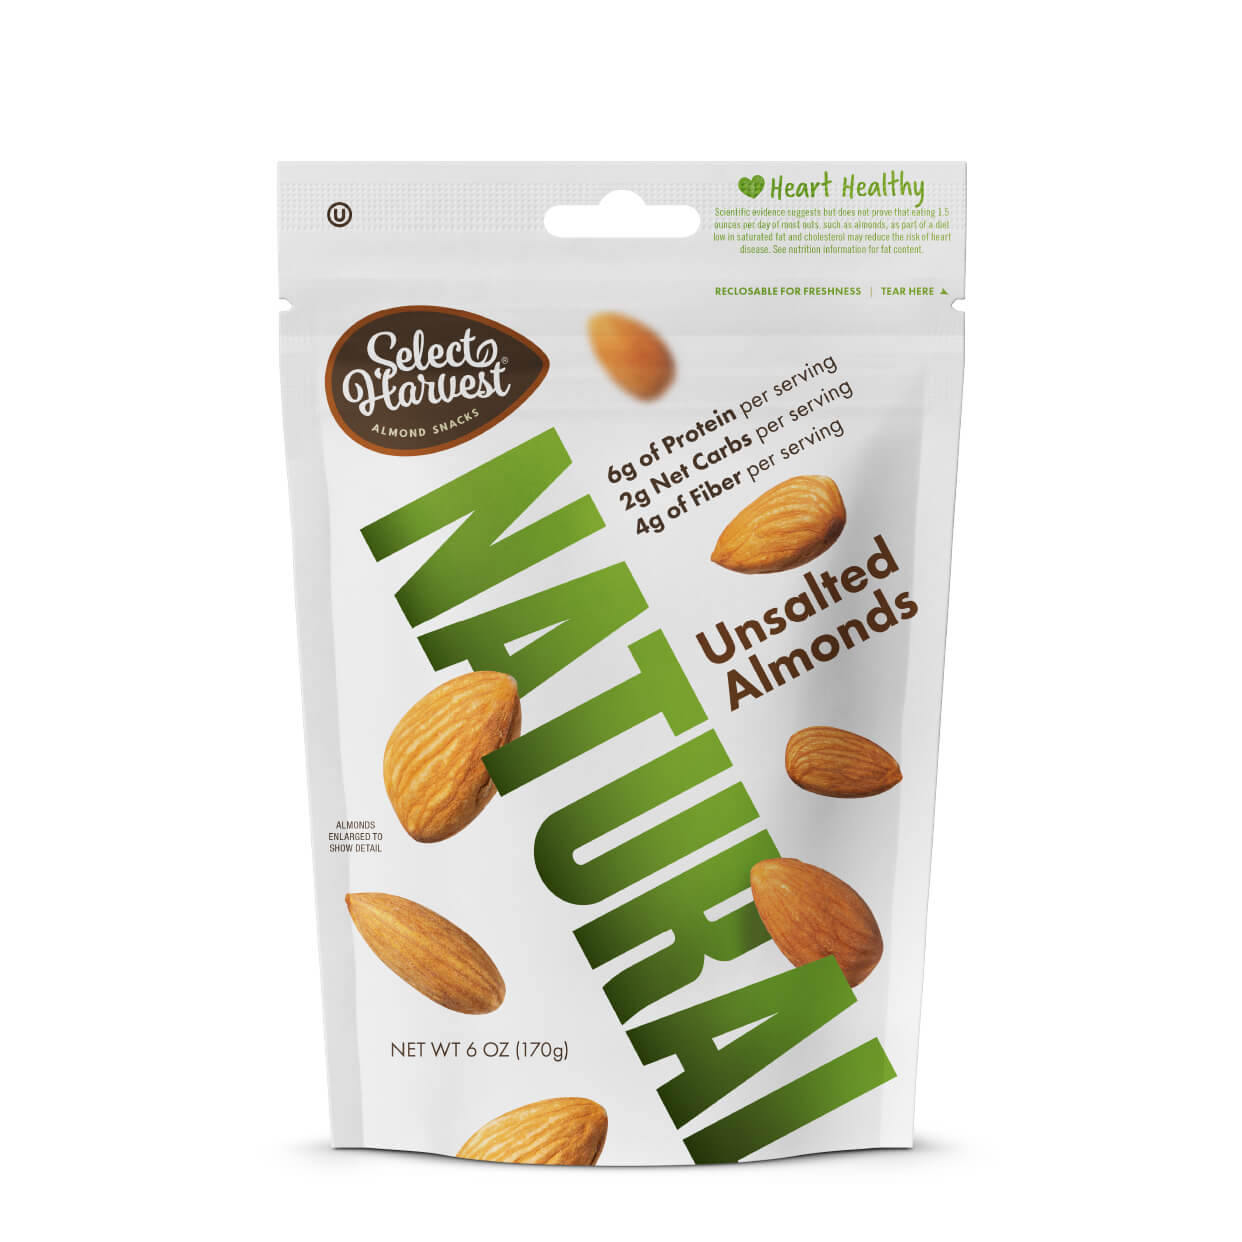 Natural Whole Almonds, unsalted